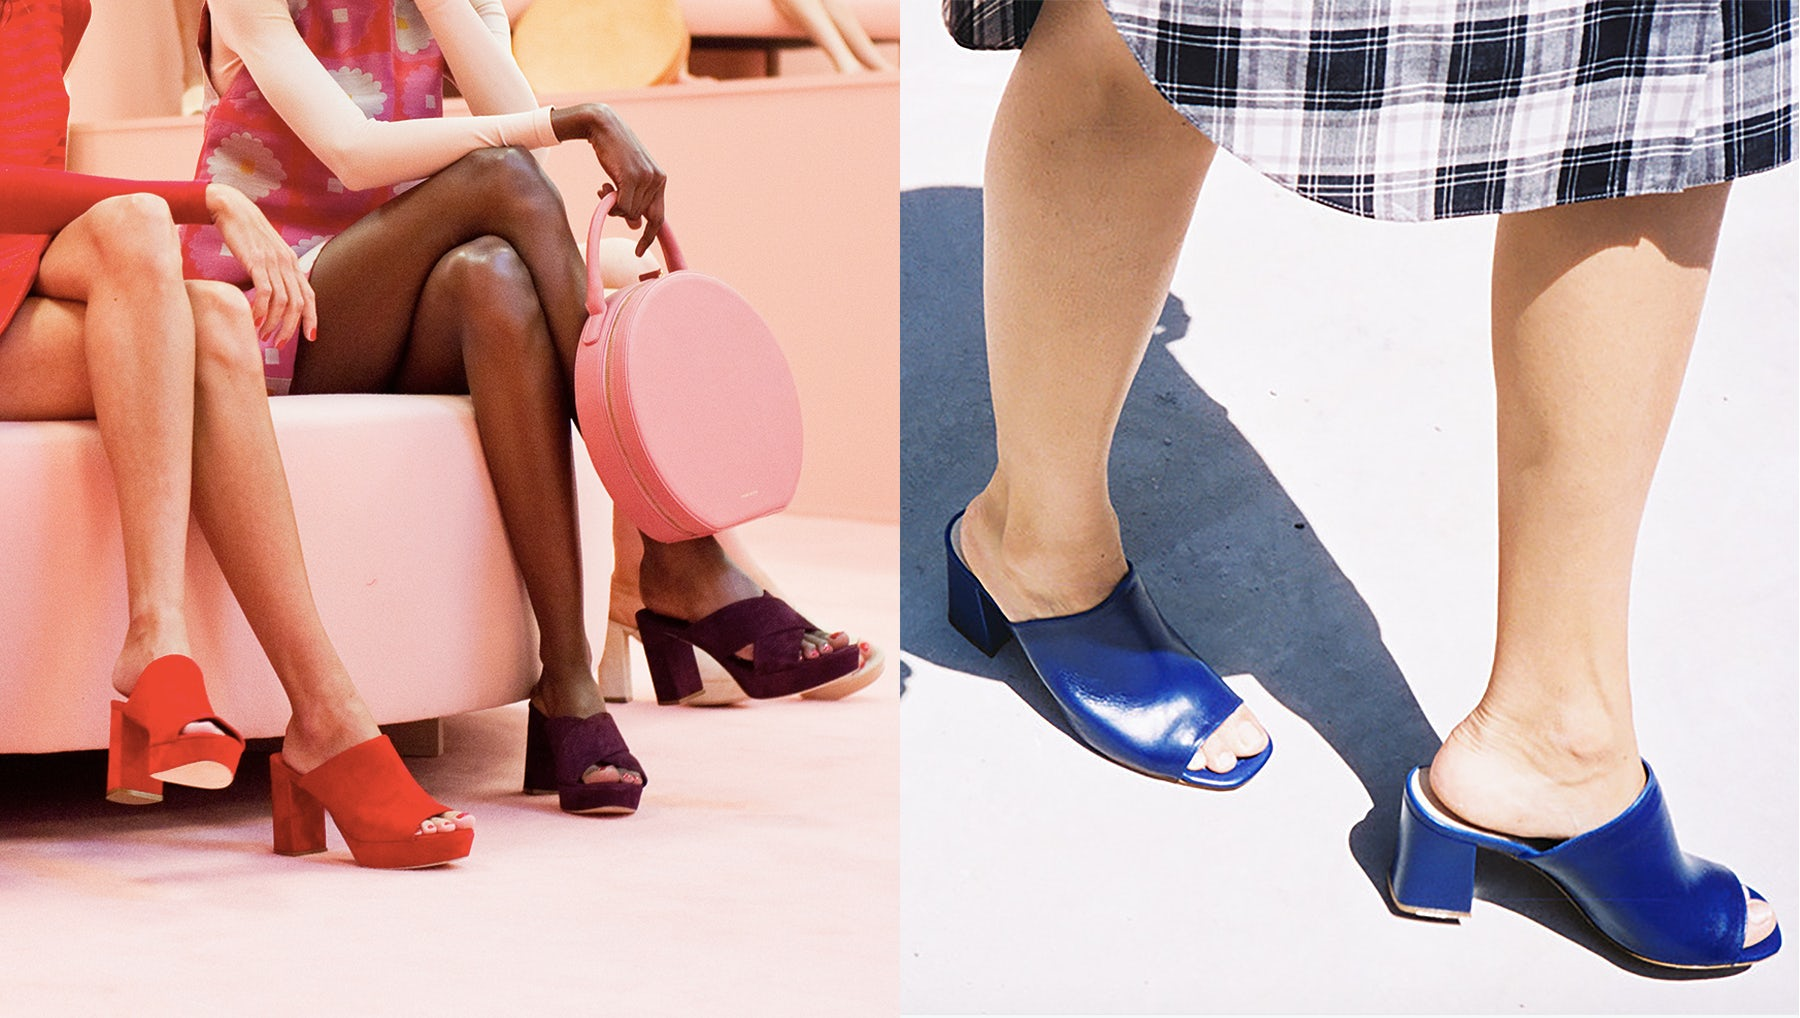 From left: Mansur Gavriel Spring 2016, Maryam Nassir Zadeh Spring 2015 | Source: Courtesy